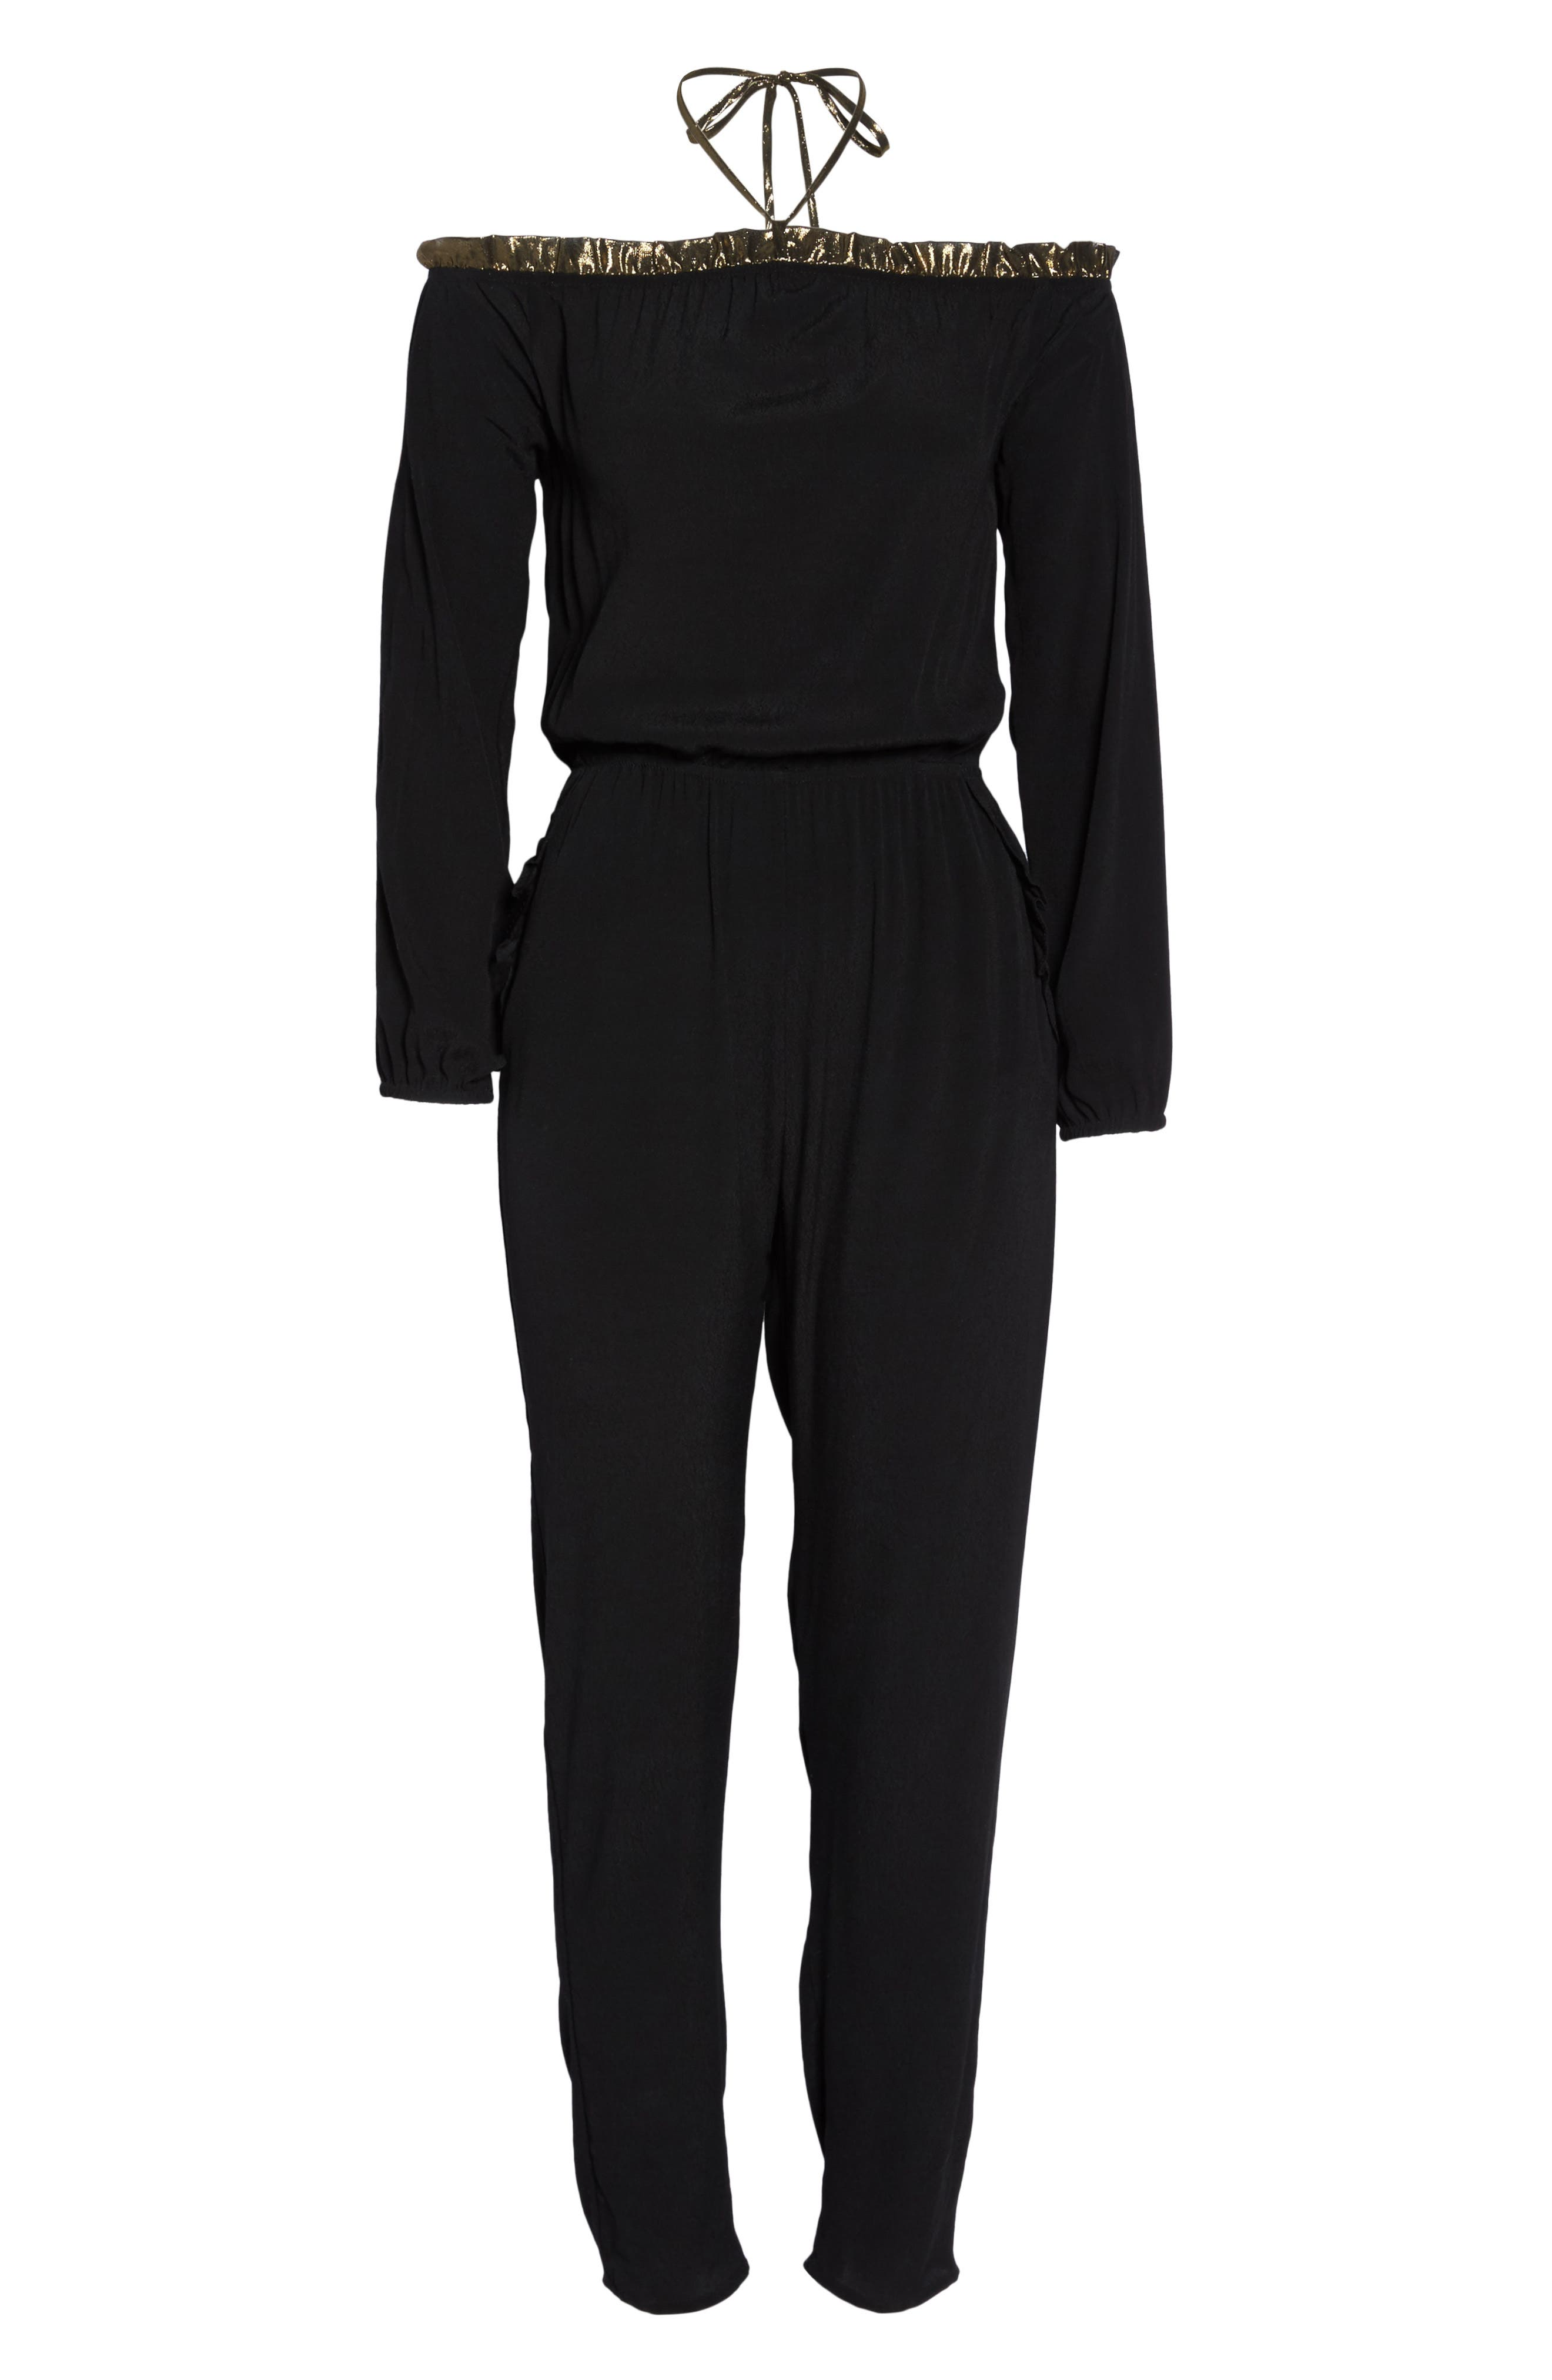 Cold Shoulder Jumpsuit,                             Alternate thumbnail 6, color,                             BLACK GOLD